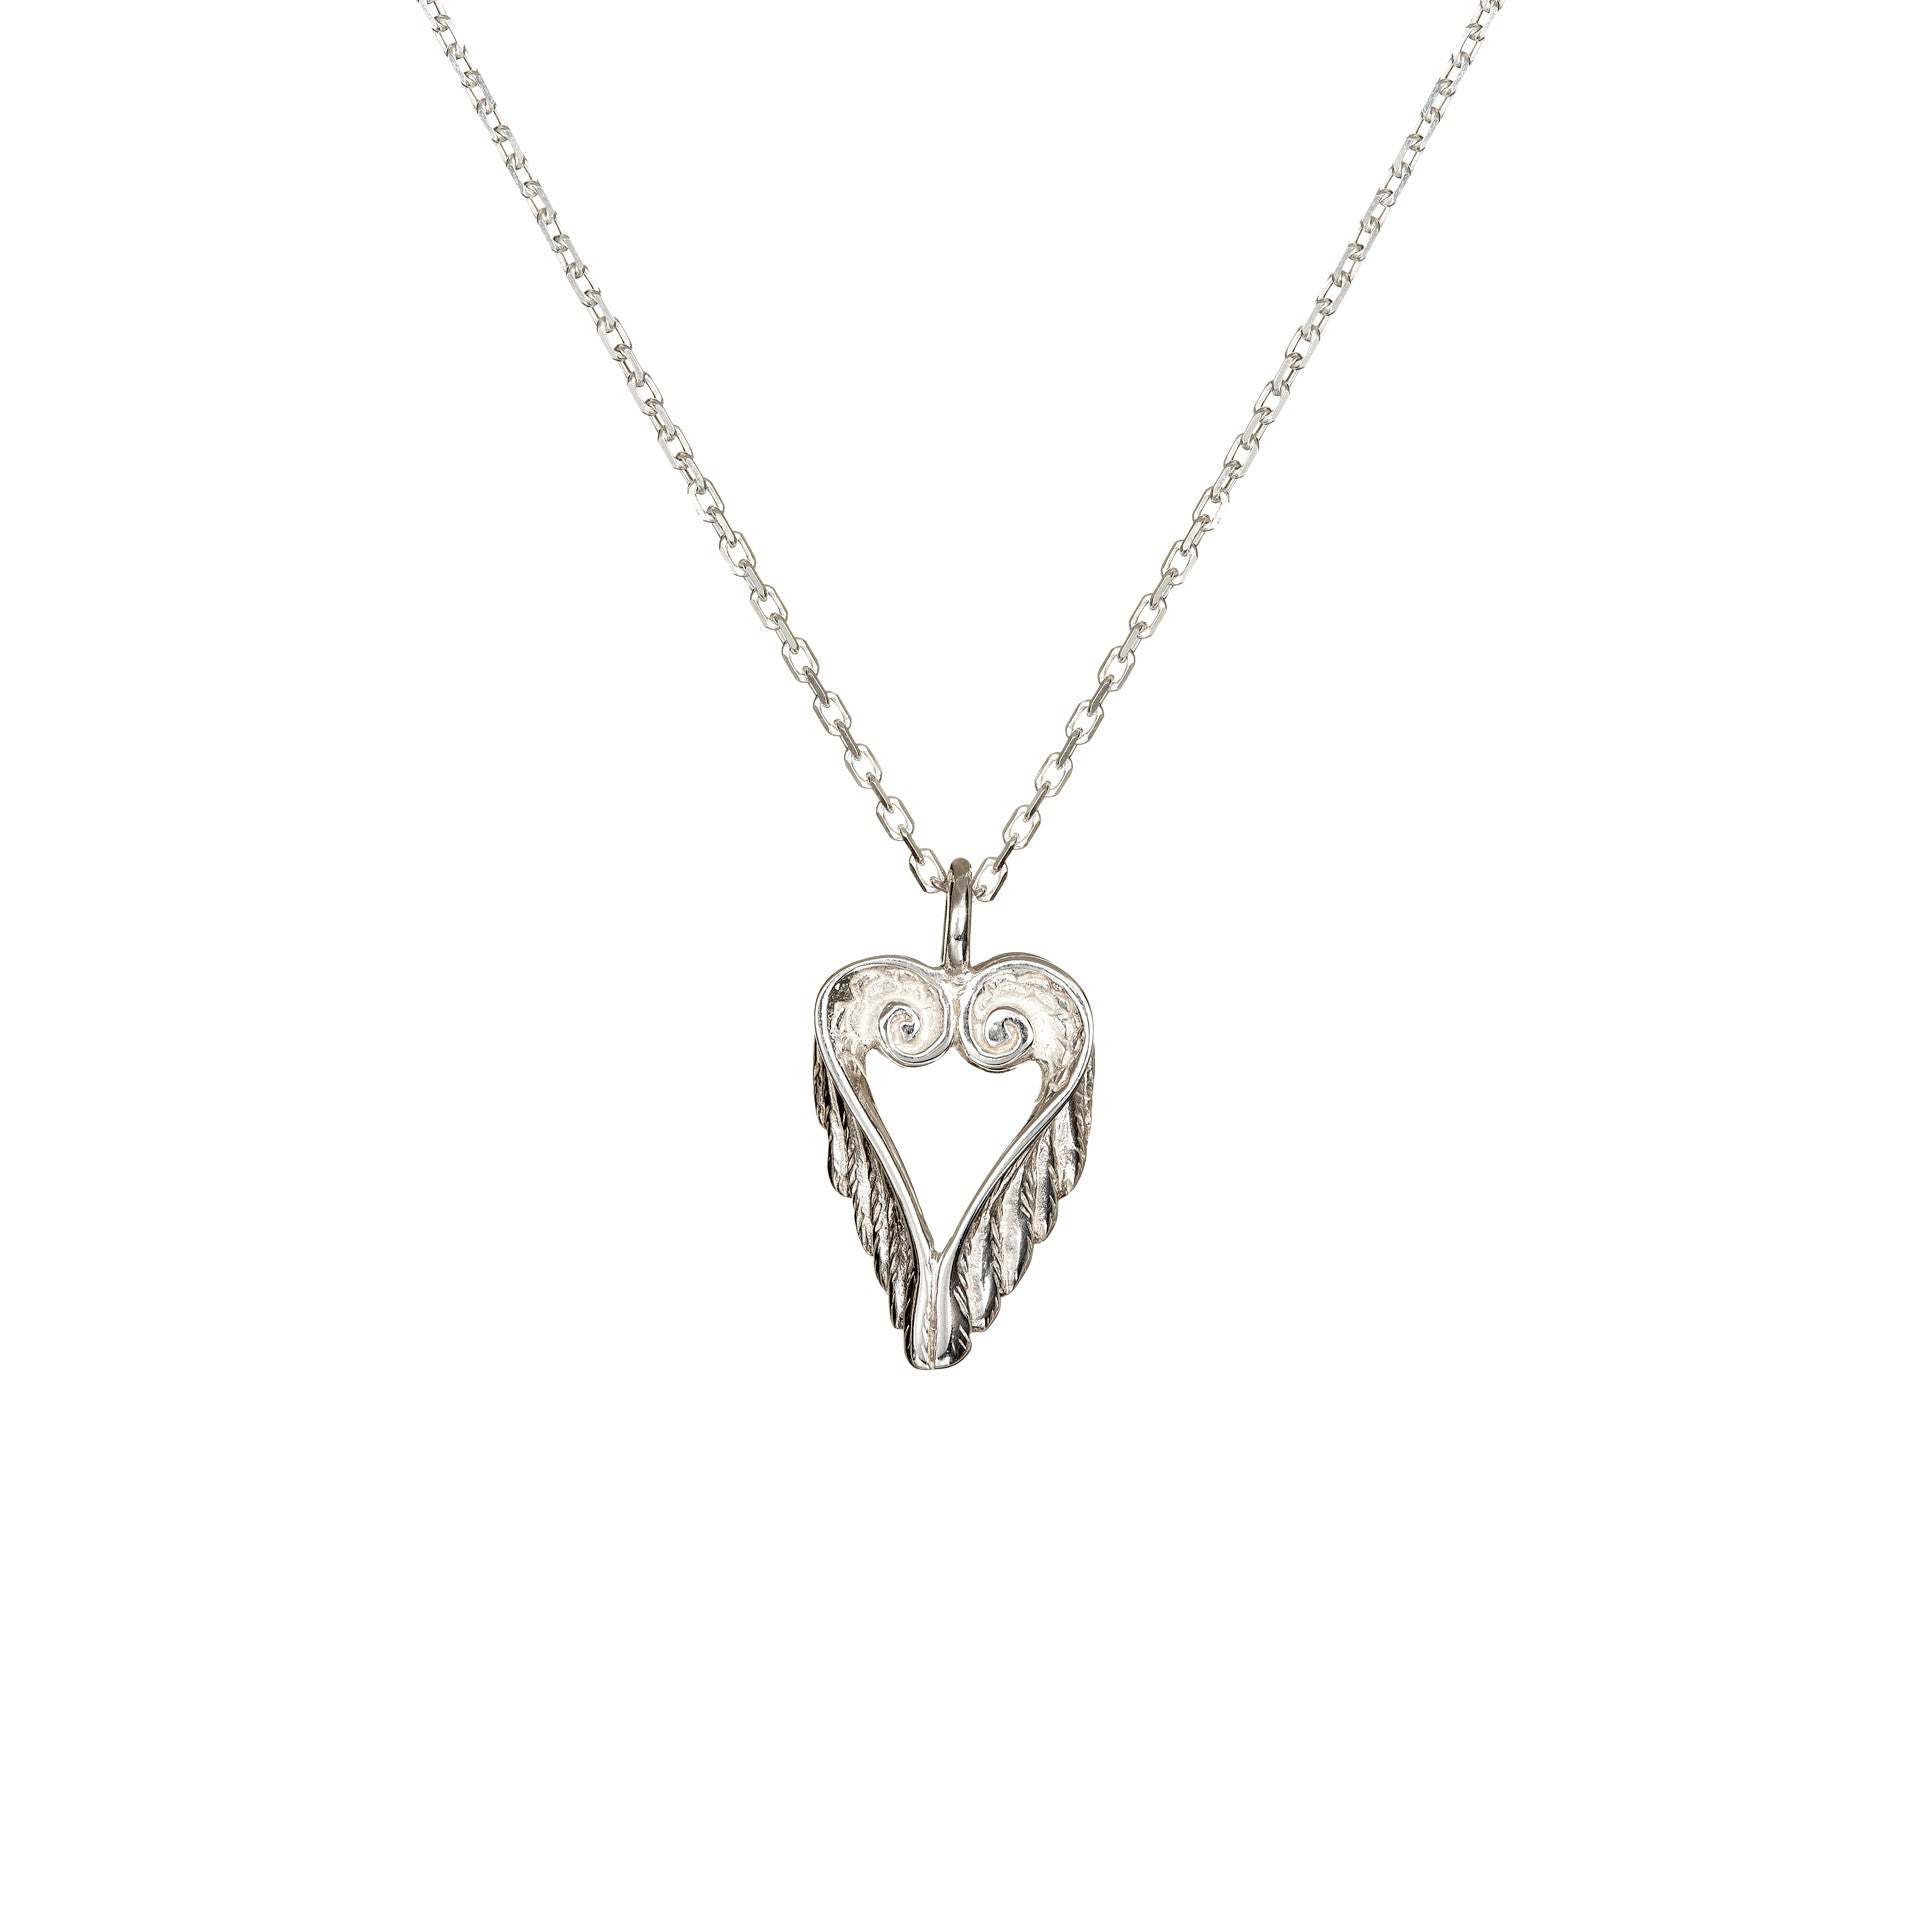 of p grw my angel jewelry bling open pendant wing silver charm sterling heart necklace wings